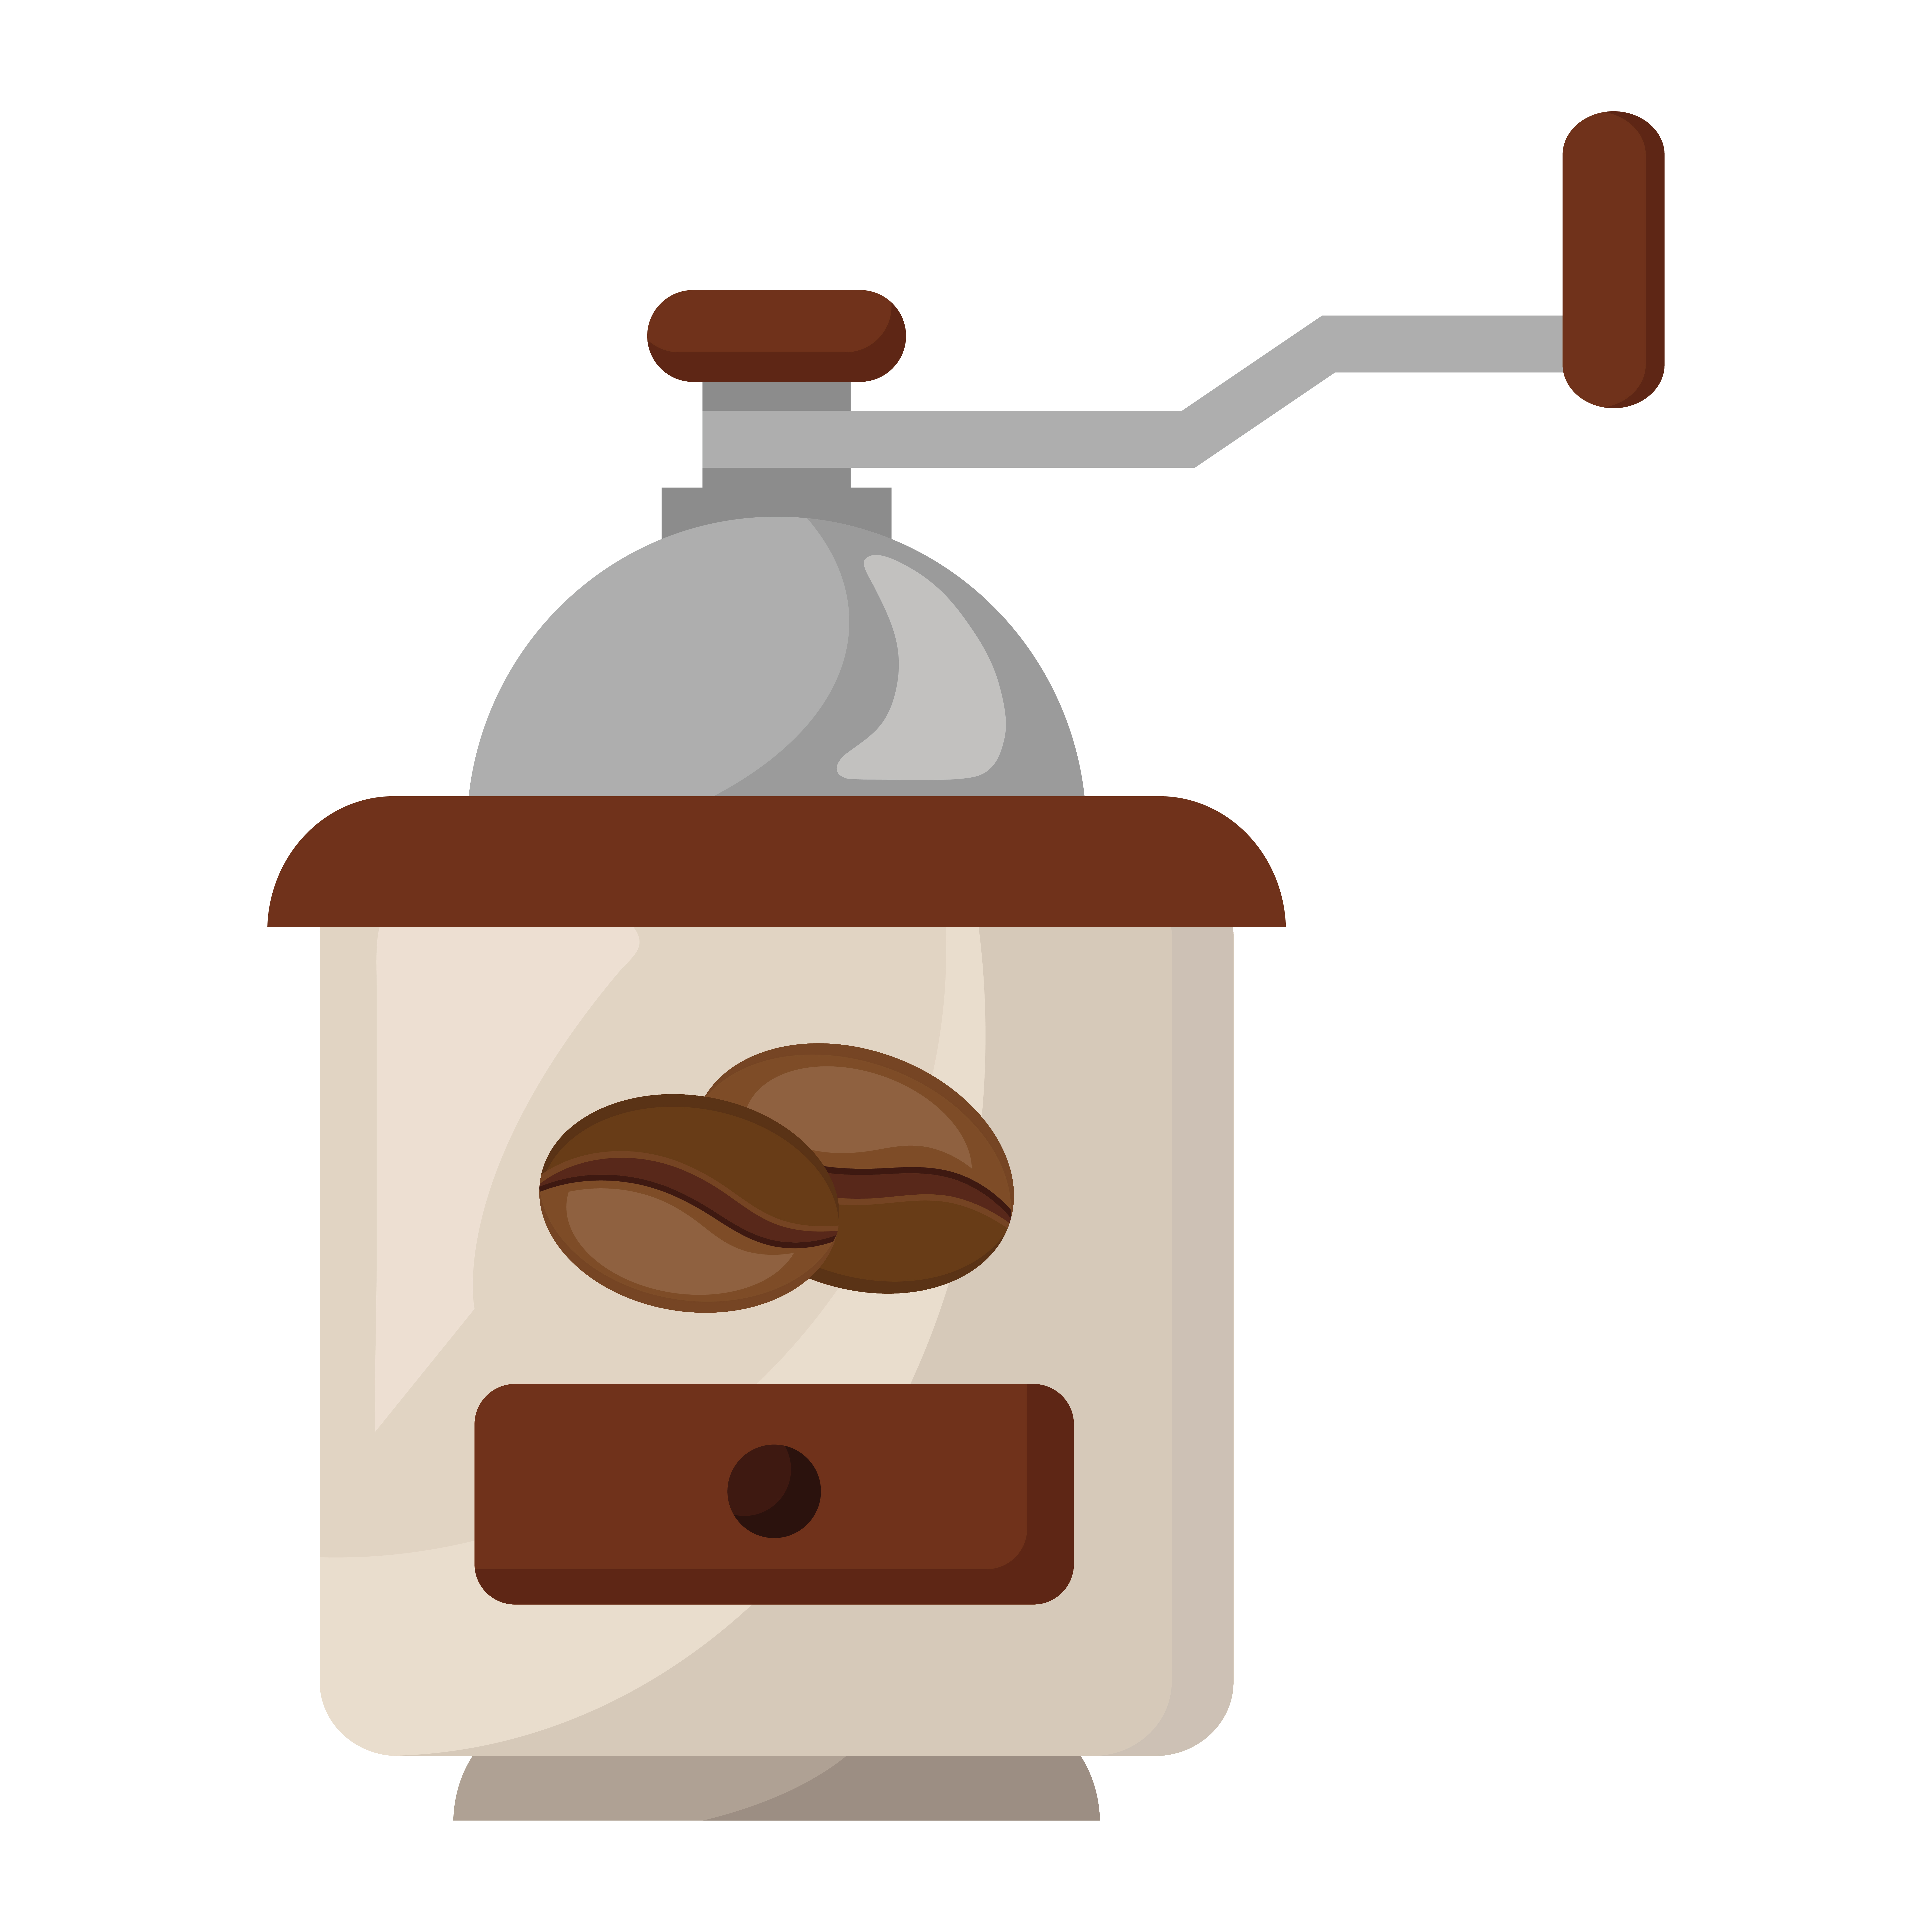 Coffee Toaster With Seeds Grains 1932084 Download Free Vectors Clipart Graphics Vector Art